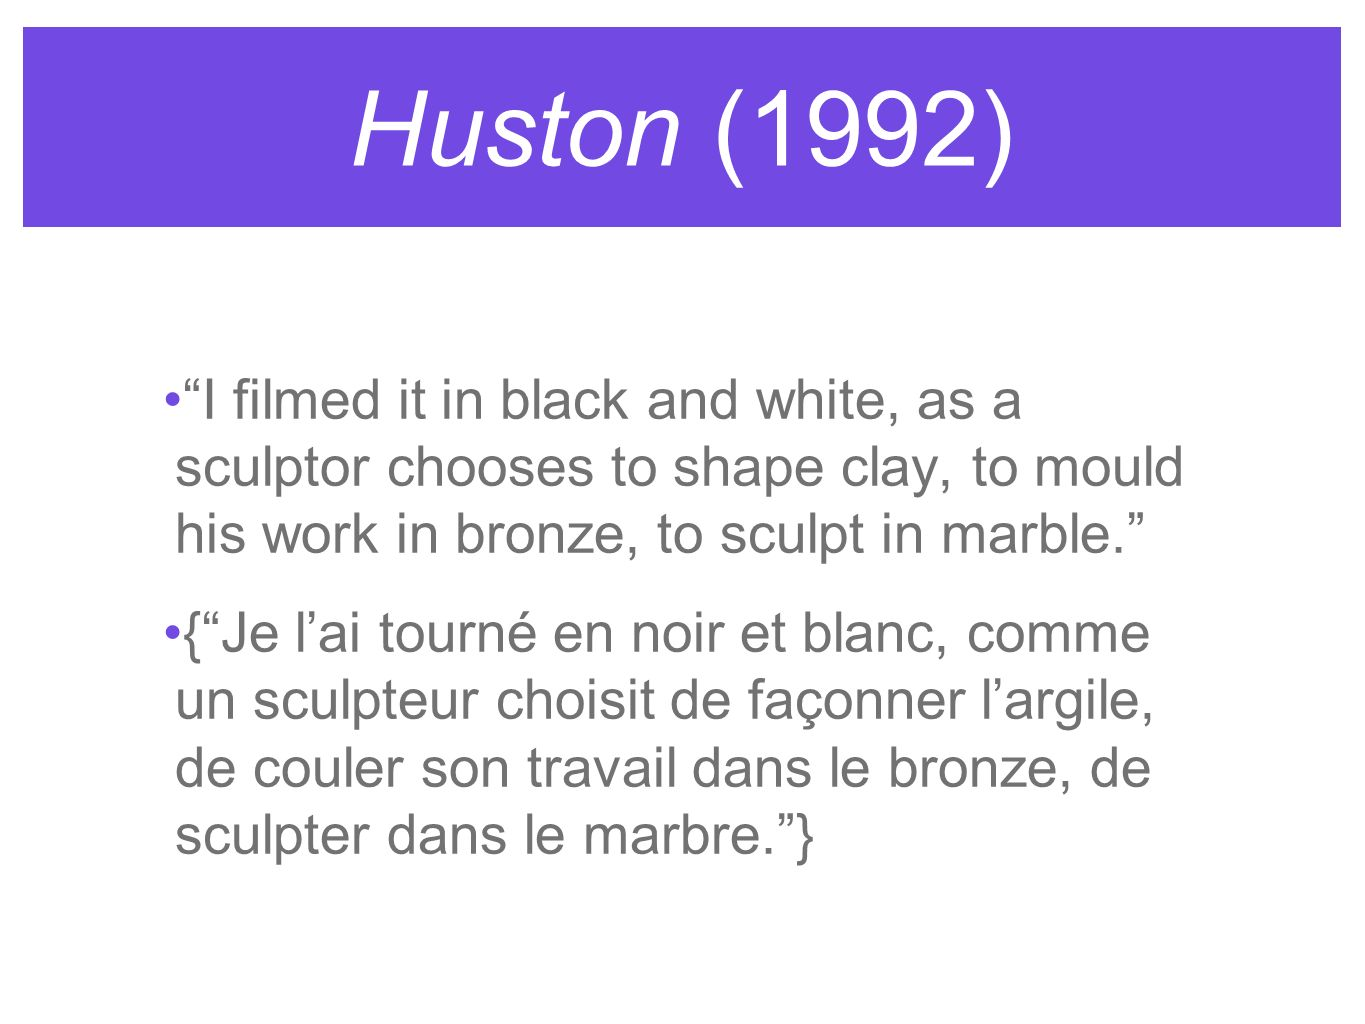 Huston (1992) I filmed it in black and white, as a sculptor chooses to shape clay, to mould his work in bronze, to sculpt in marble. {Je lai tourné en